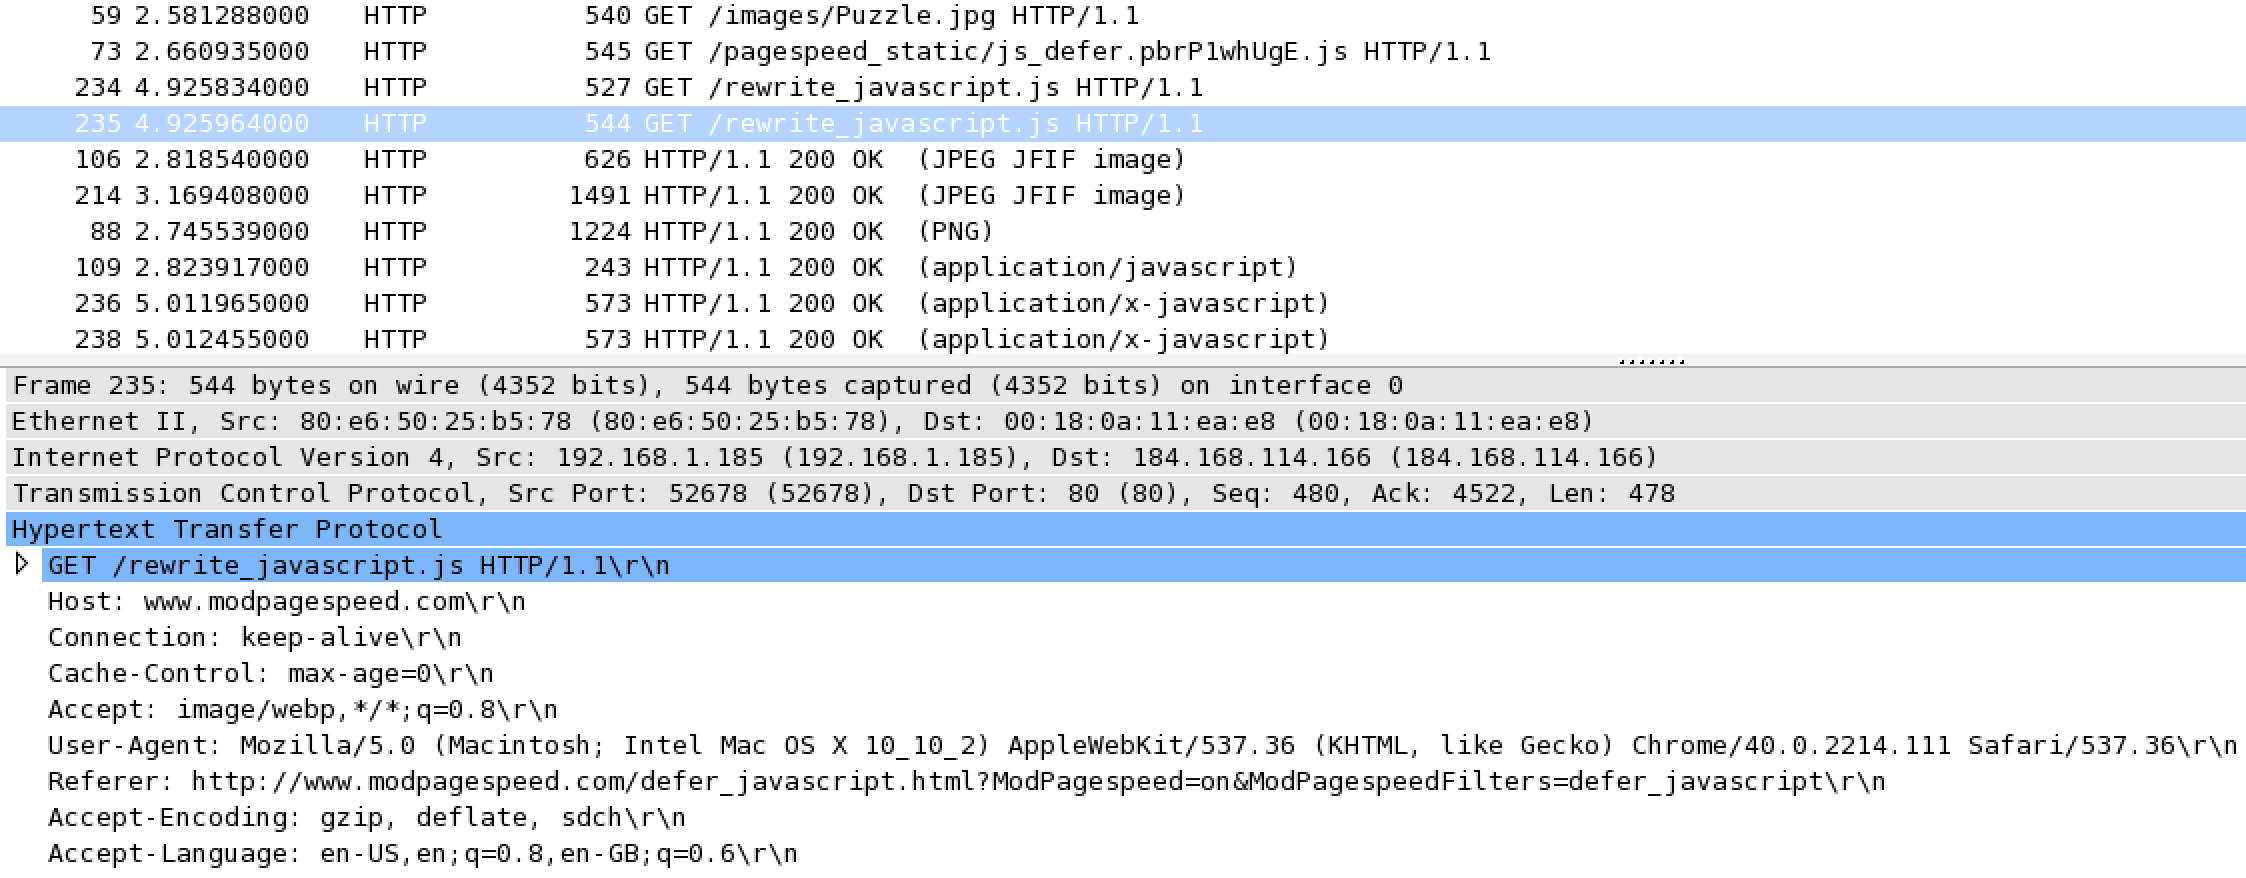 PageSpeed Wireshark